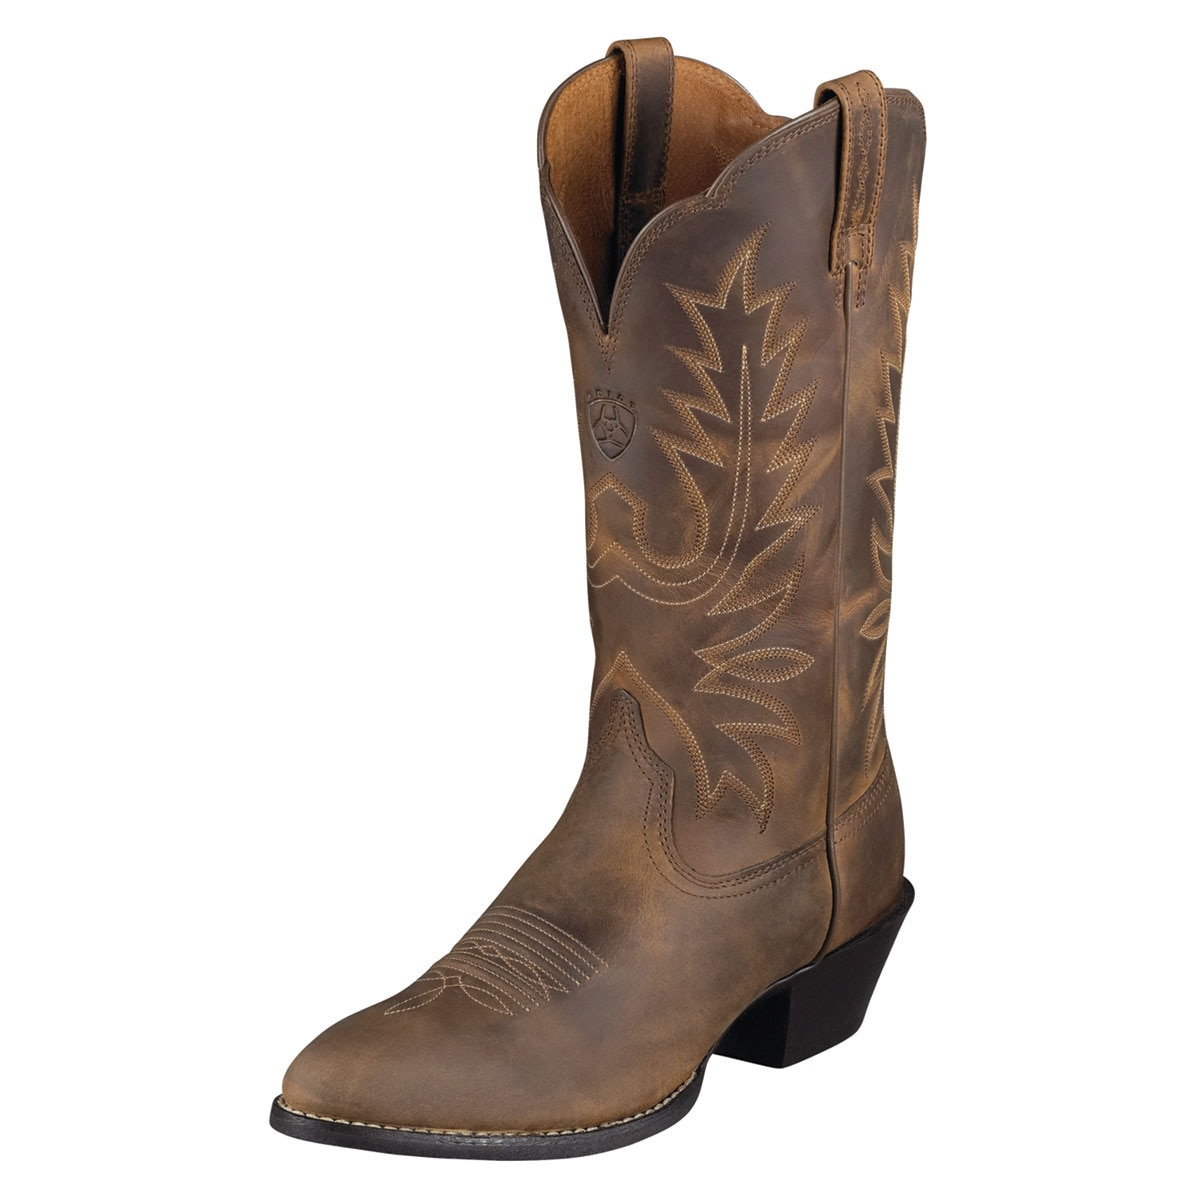 Ariat Women's Heritage Western Boots- Closeout!